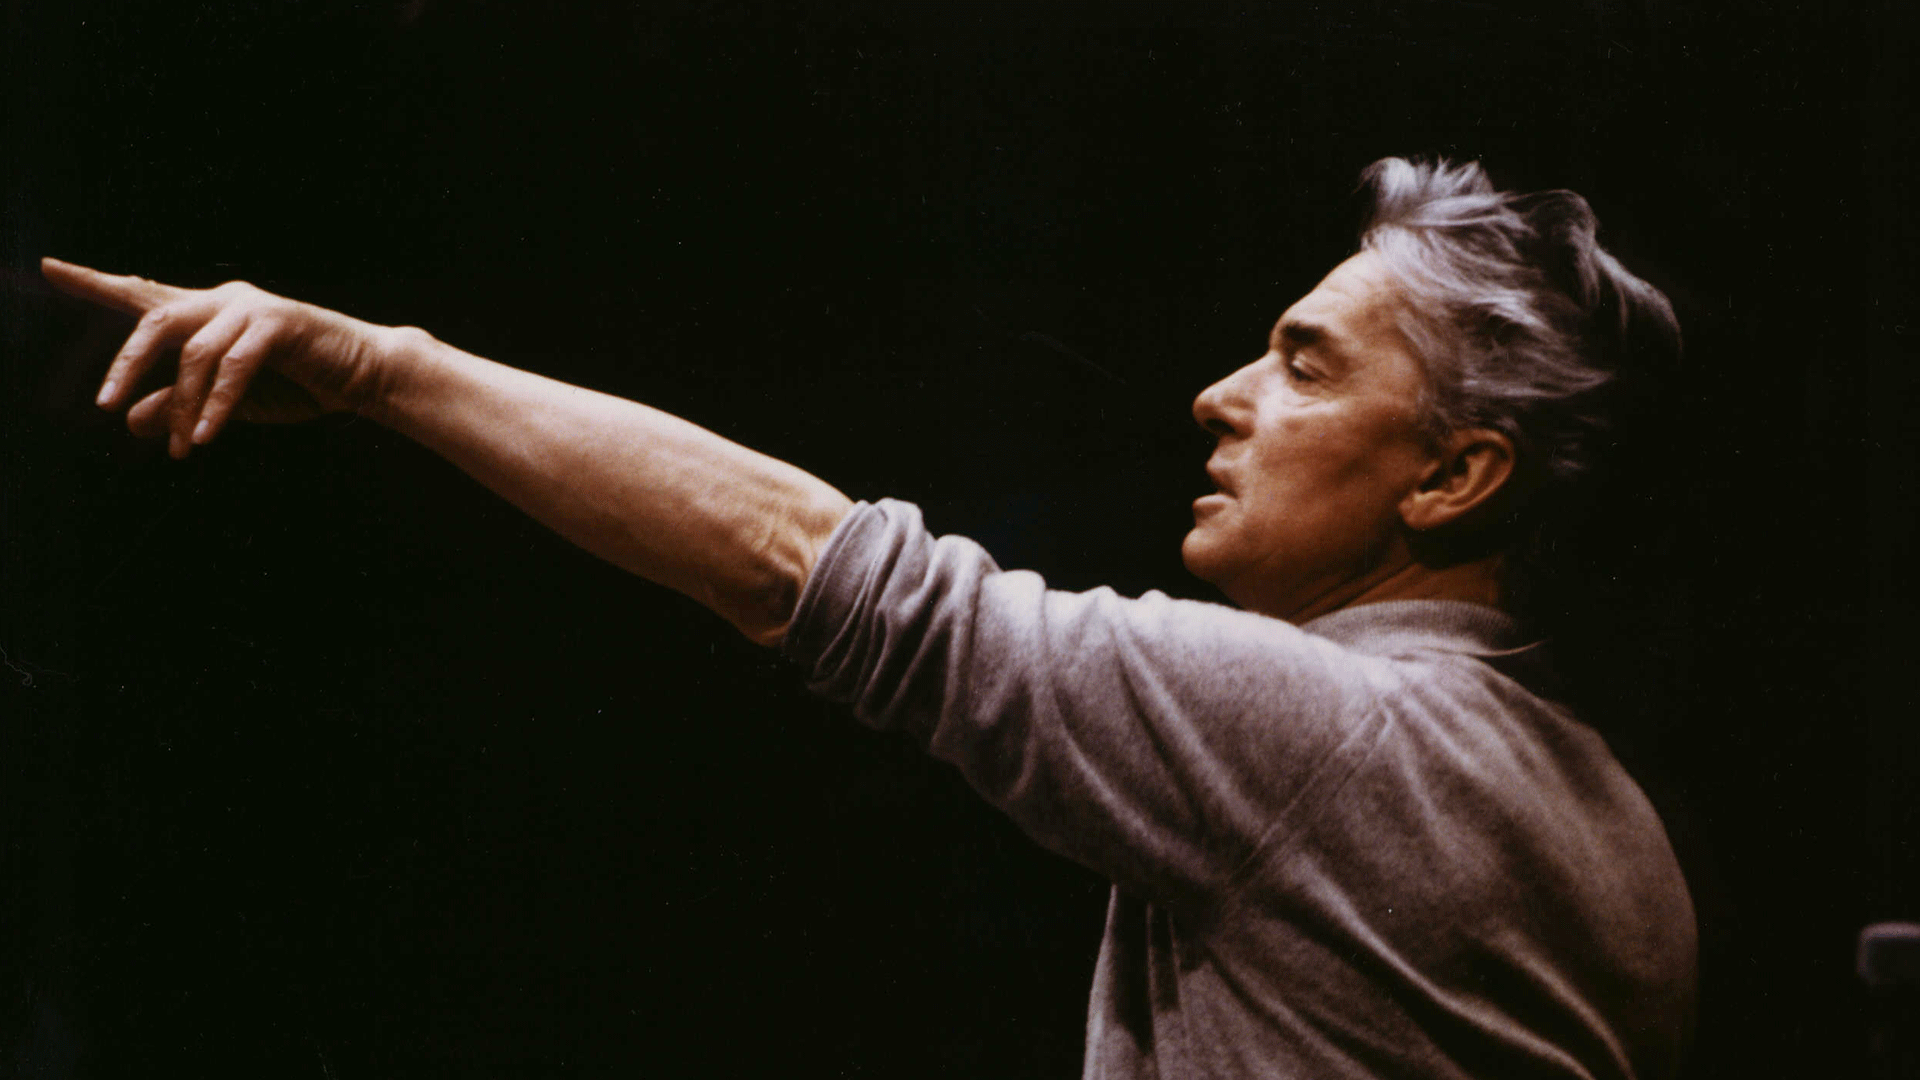 Herbert von Karajan conducts the 1983 New Year's Eve Concert